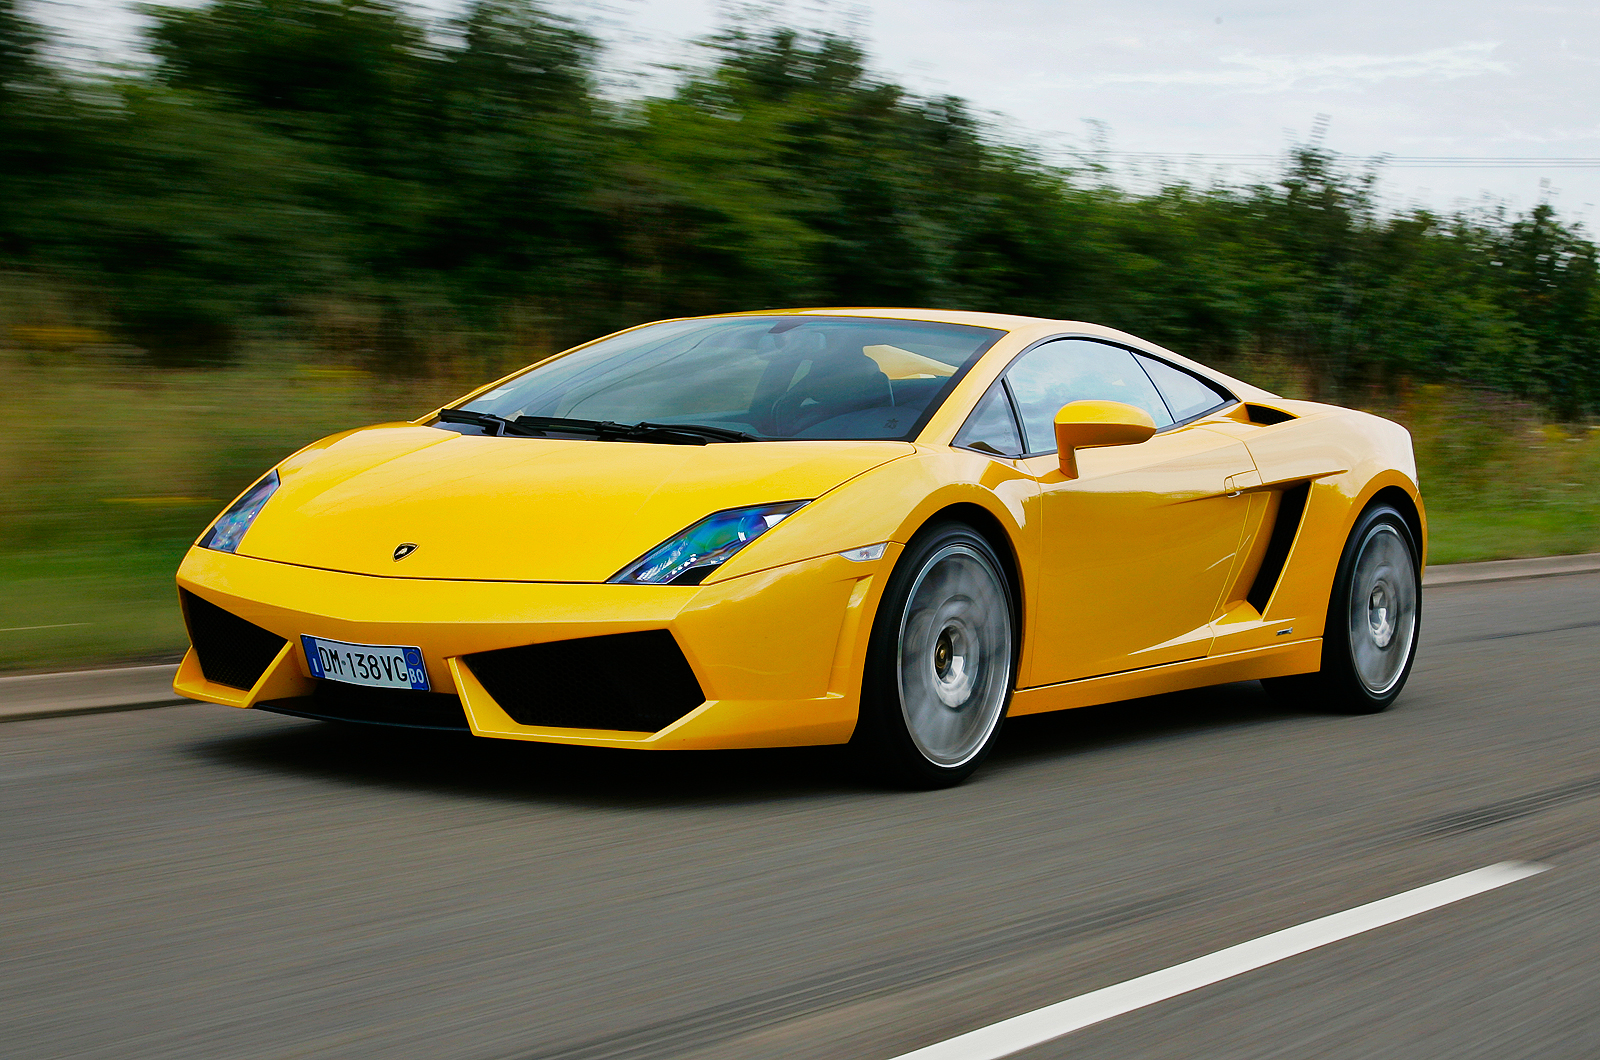 Lamborghini Gallardo 2003 2013 Review | Autocar